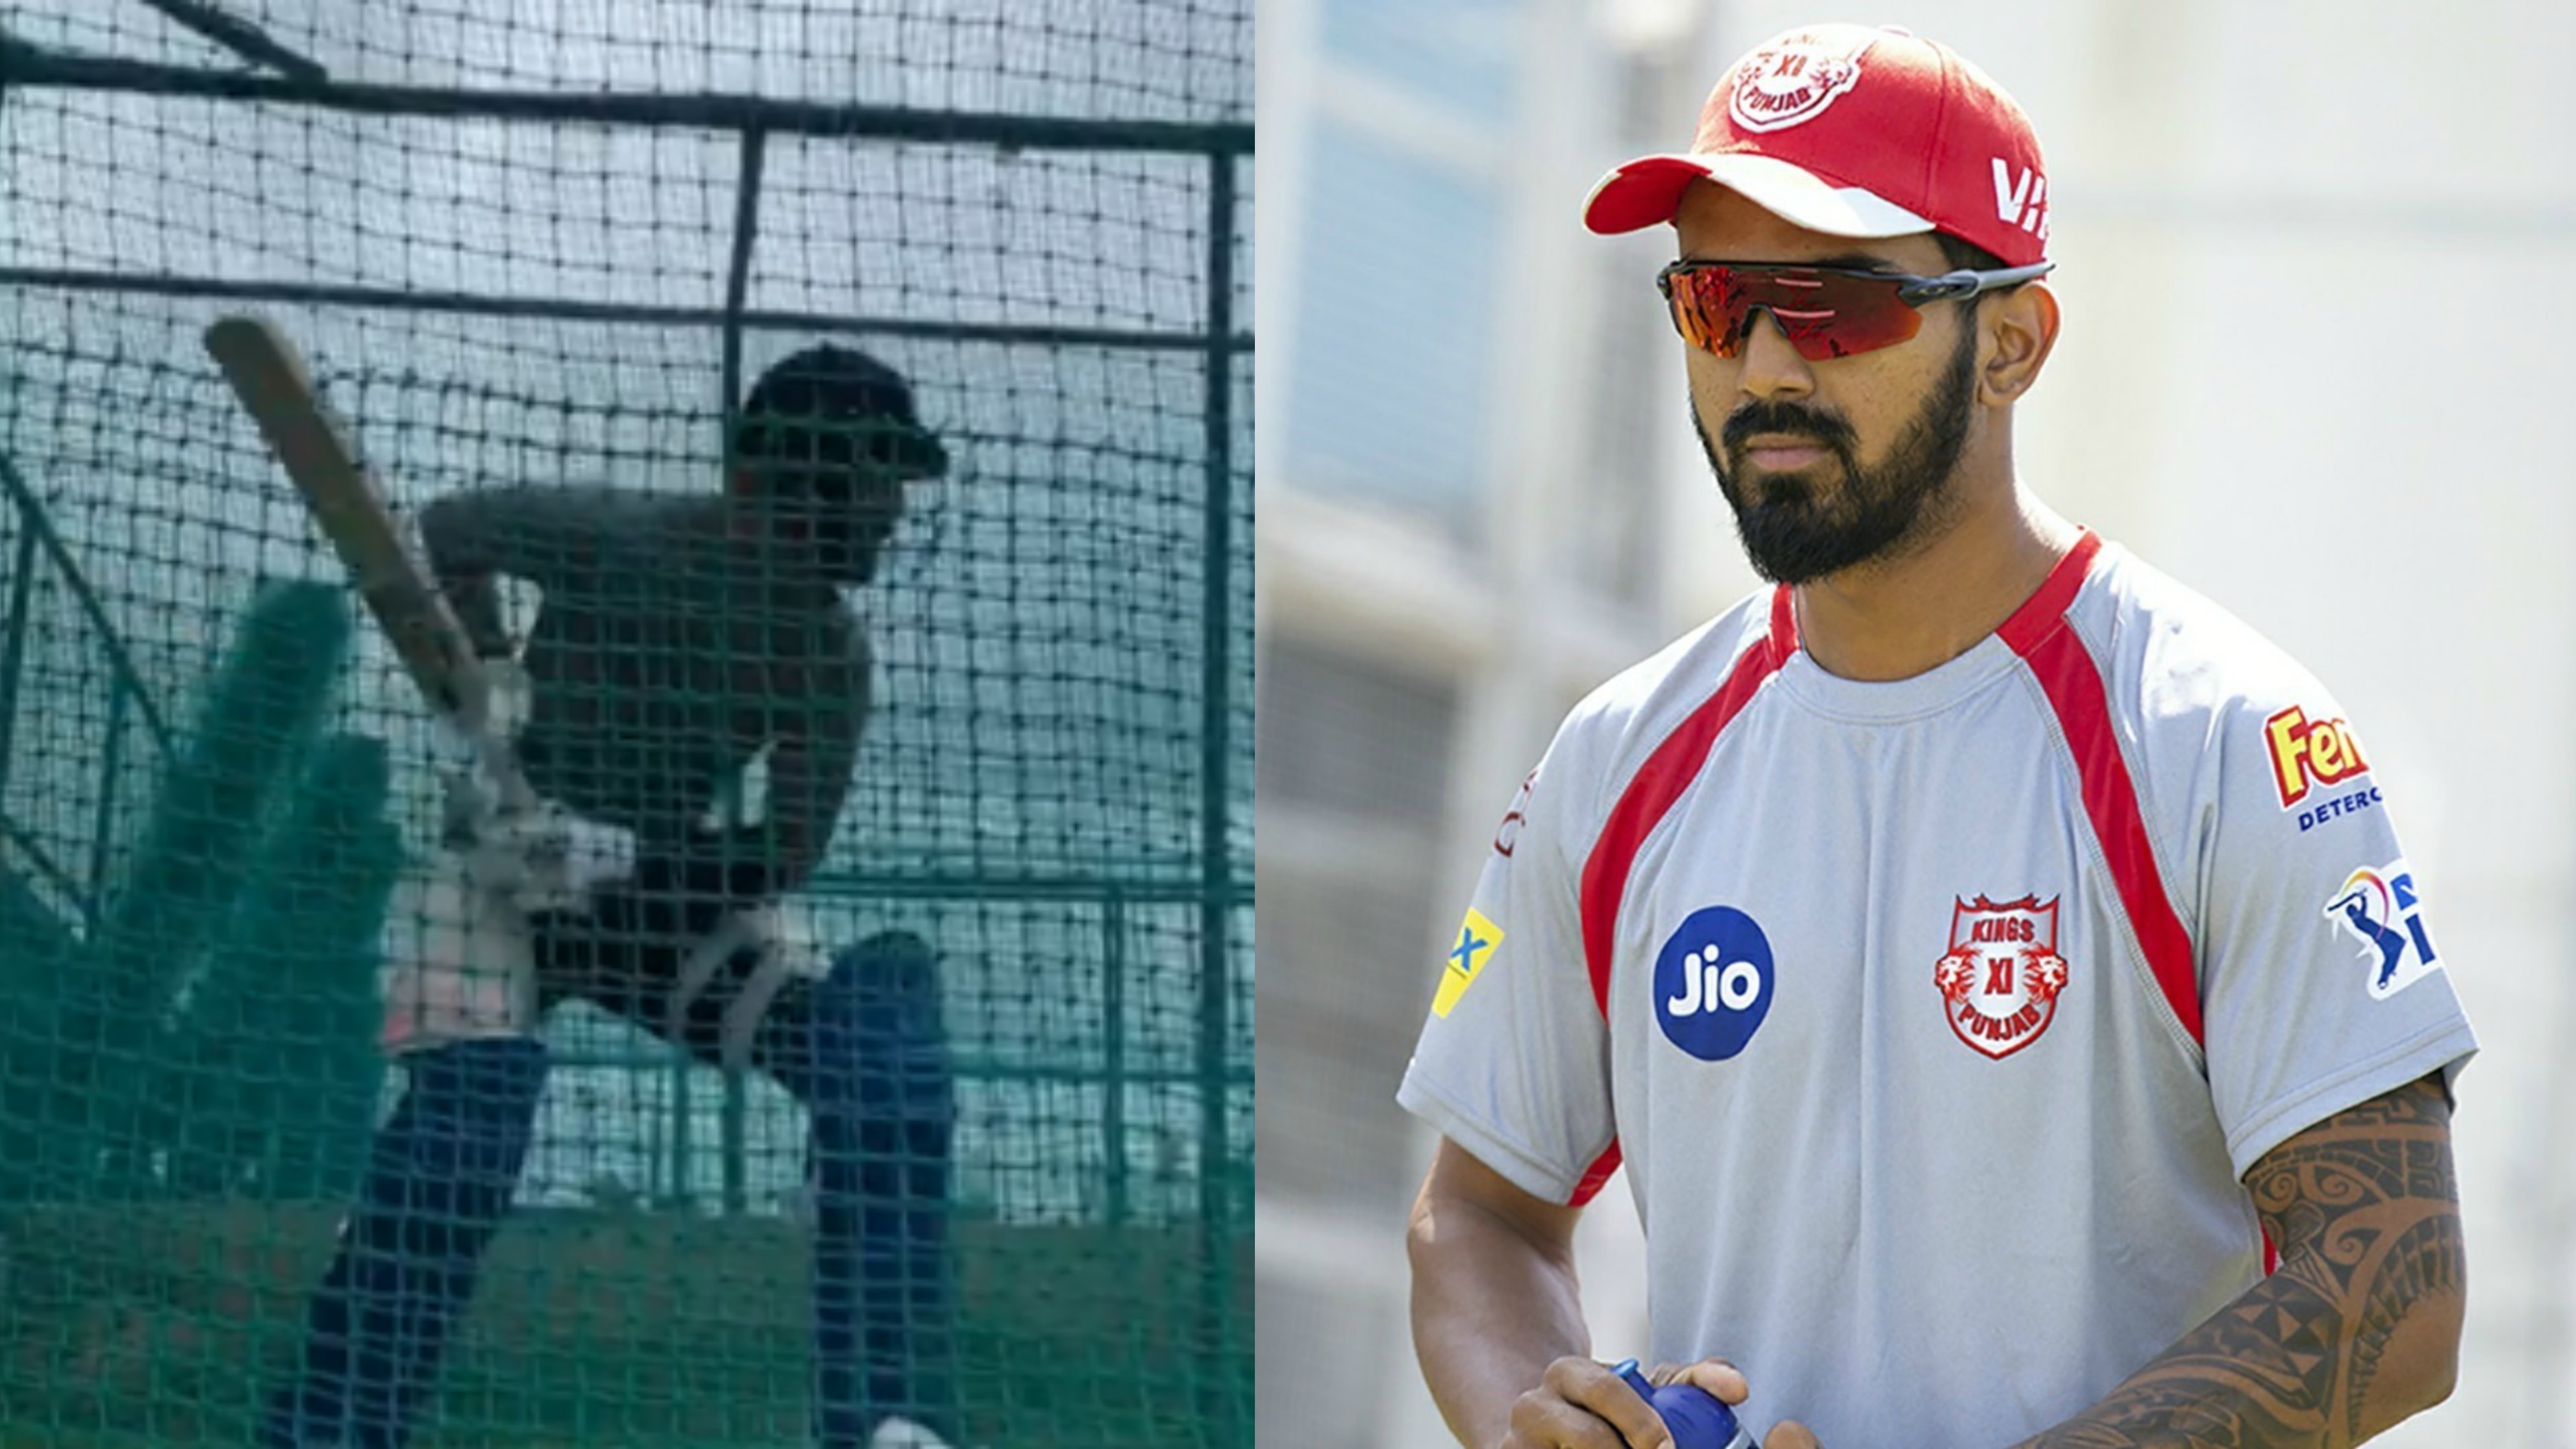 IPL 2020: WATCH - KL Rahul back in nets ahead of the IPL13; says